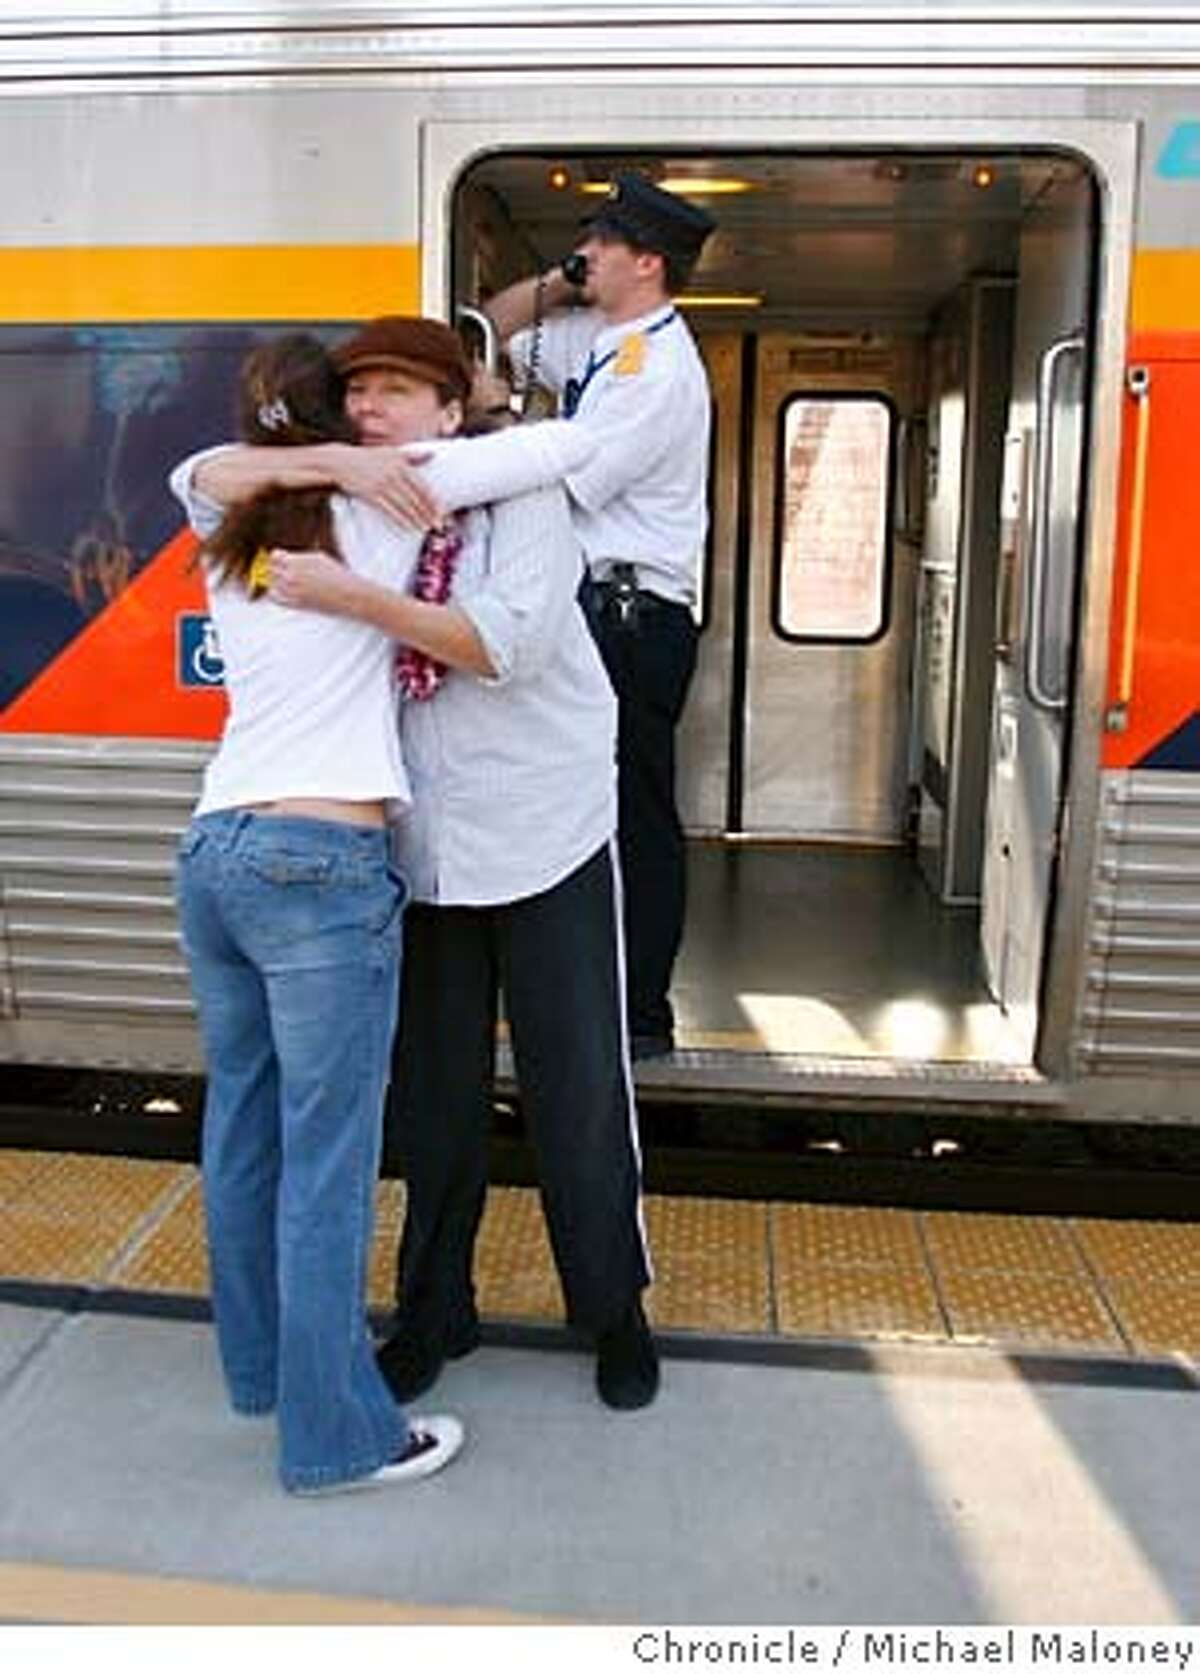 Debbie Mills of Huntington Beach, CA (facing camera) hugs goodbye to her daughter Amethyst Thomas of Danville prior to boarding a westbound Capitol Corridor train in Hayward. In background is Capitol Corridor's Matt Zundel. Mills was in Danville visiting Thomas' family, prior to heading back home. The Capitol Corridor, a train service run by parts of nearly a dozen agencies, shouldn't work. Too many bureaucrats have their hands in it and it relies on tracks heavily traveled by freight trains. But the increasingly popular commuter train service turns 15 this month and its popularity is soaring. Photo by Michael Maloney / San Francisco Chronicle MANDATORY CREDIT FOR PHOTOG AND SF CHRONICLE/ -MAGS OUT